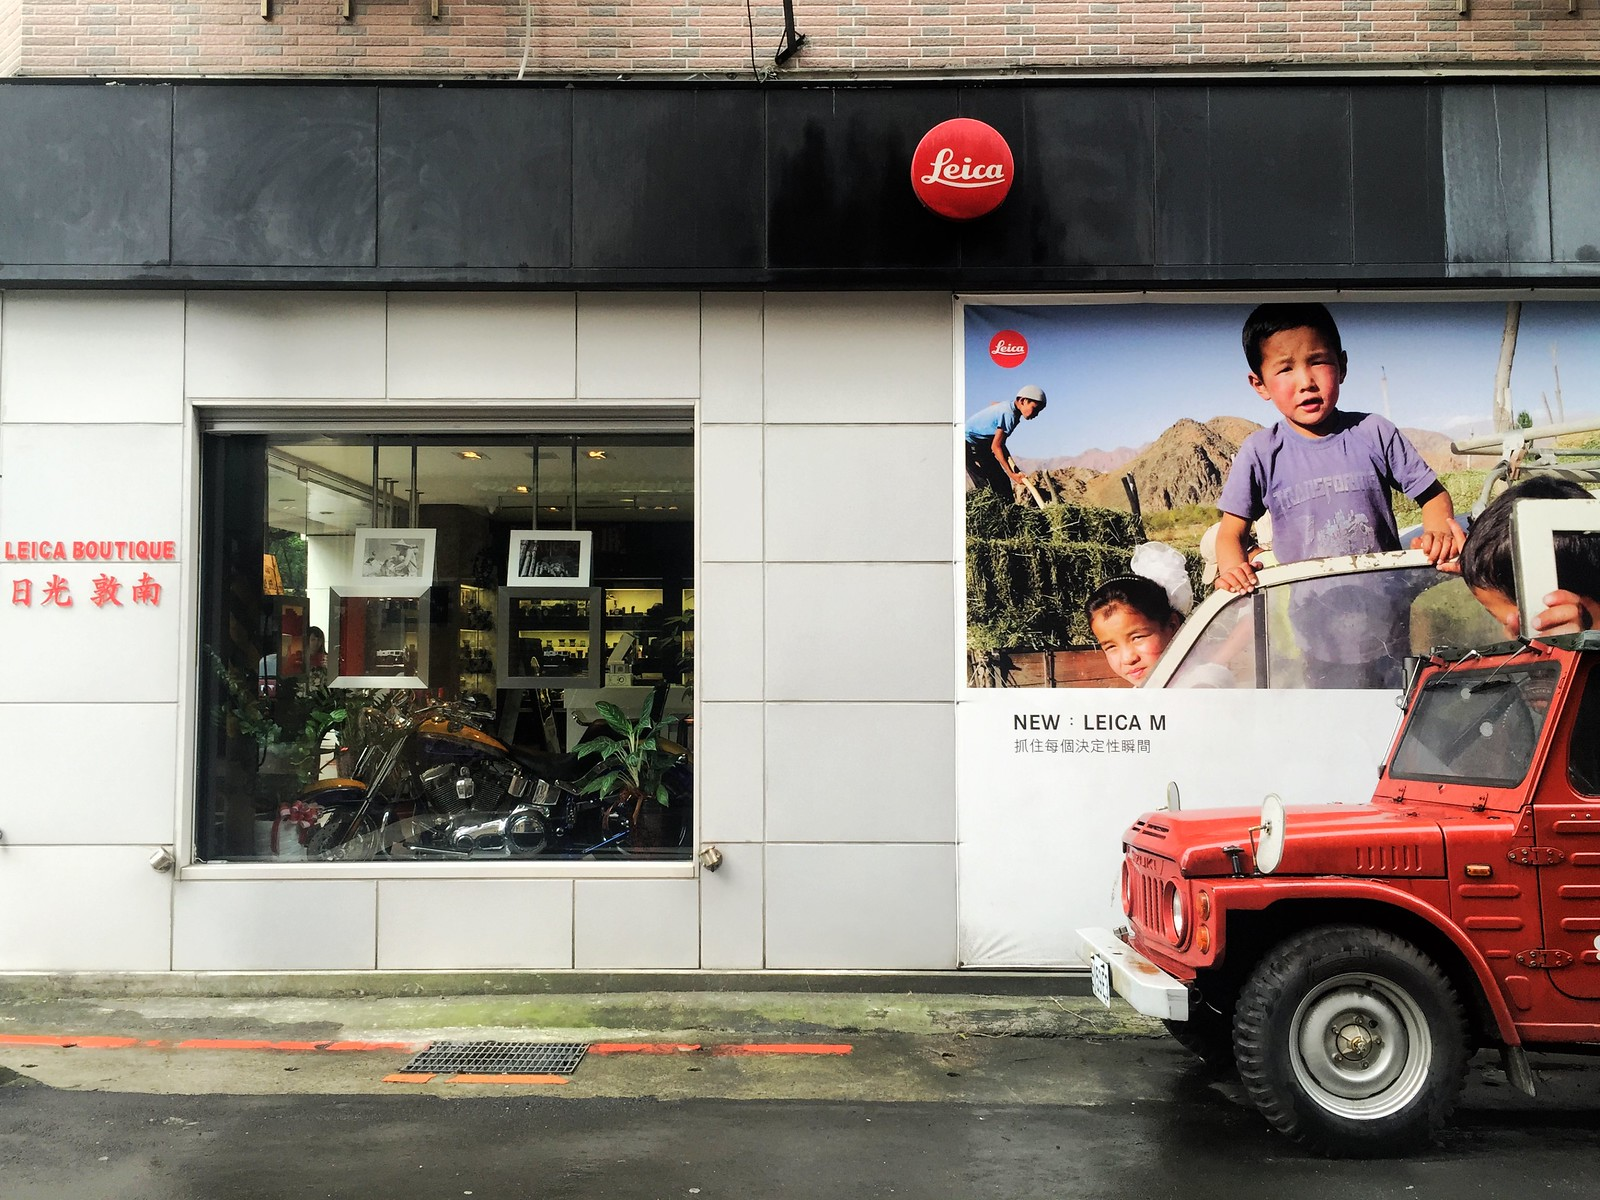 Leica Stores are also a nice place to find film in Taipei